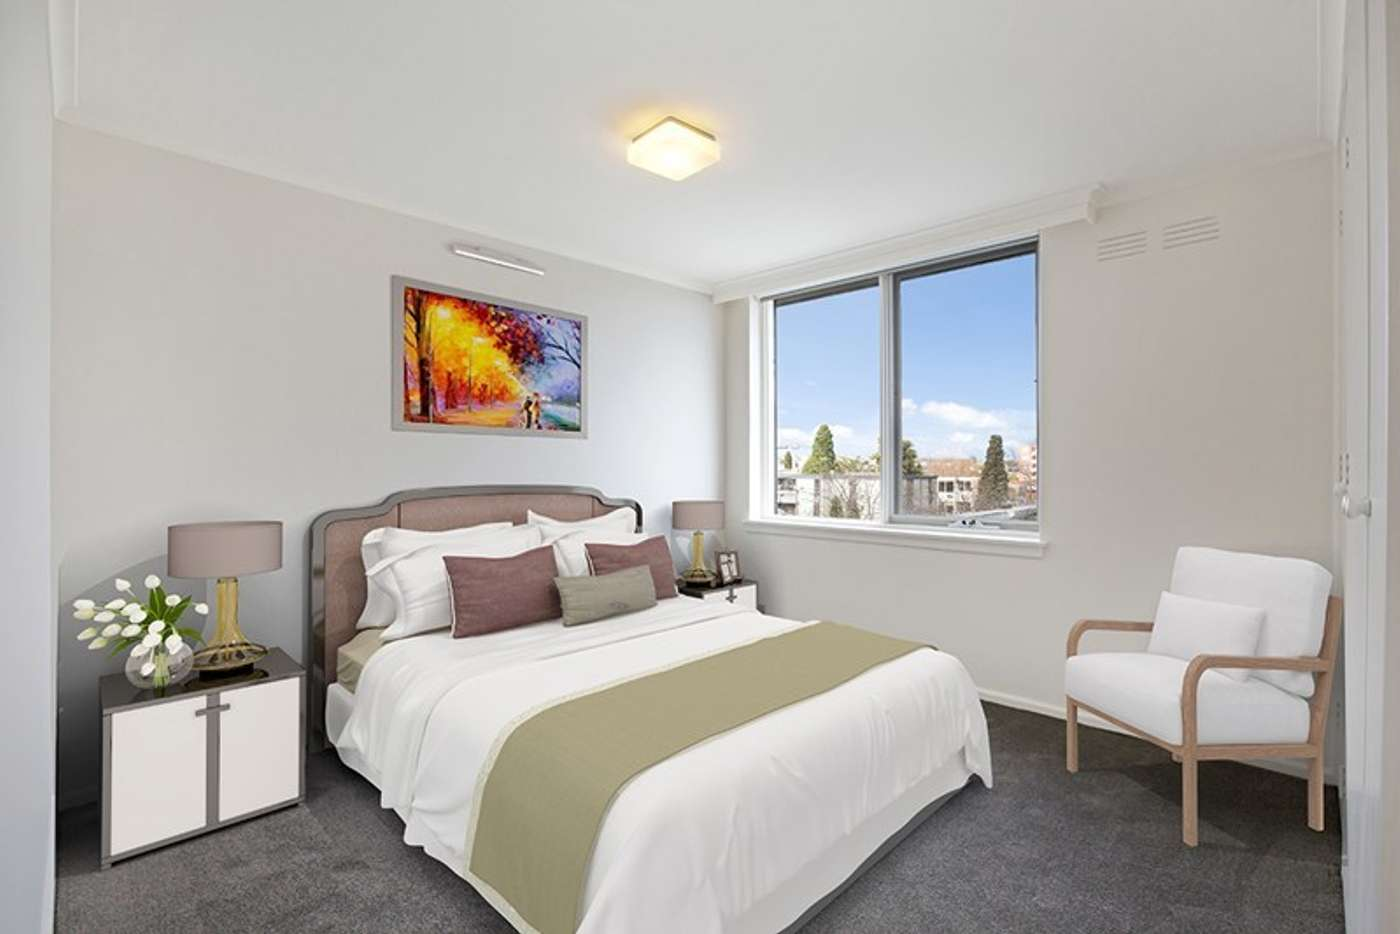 Fifth view of Homely apartment listing, 13/31 Kensington Road, South Yarra VIC 3141